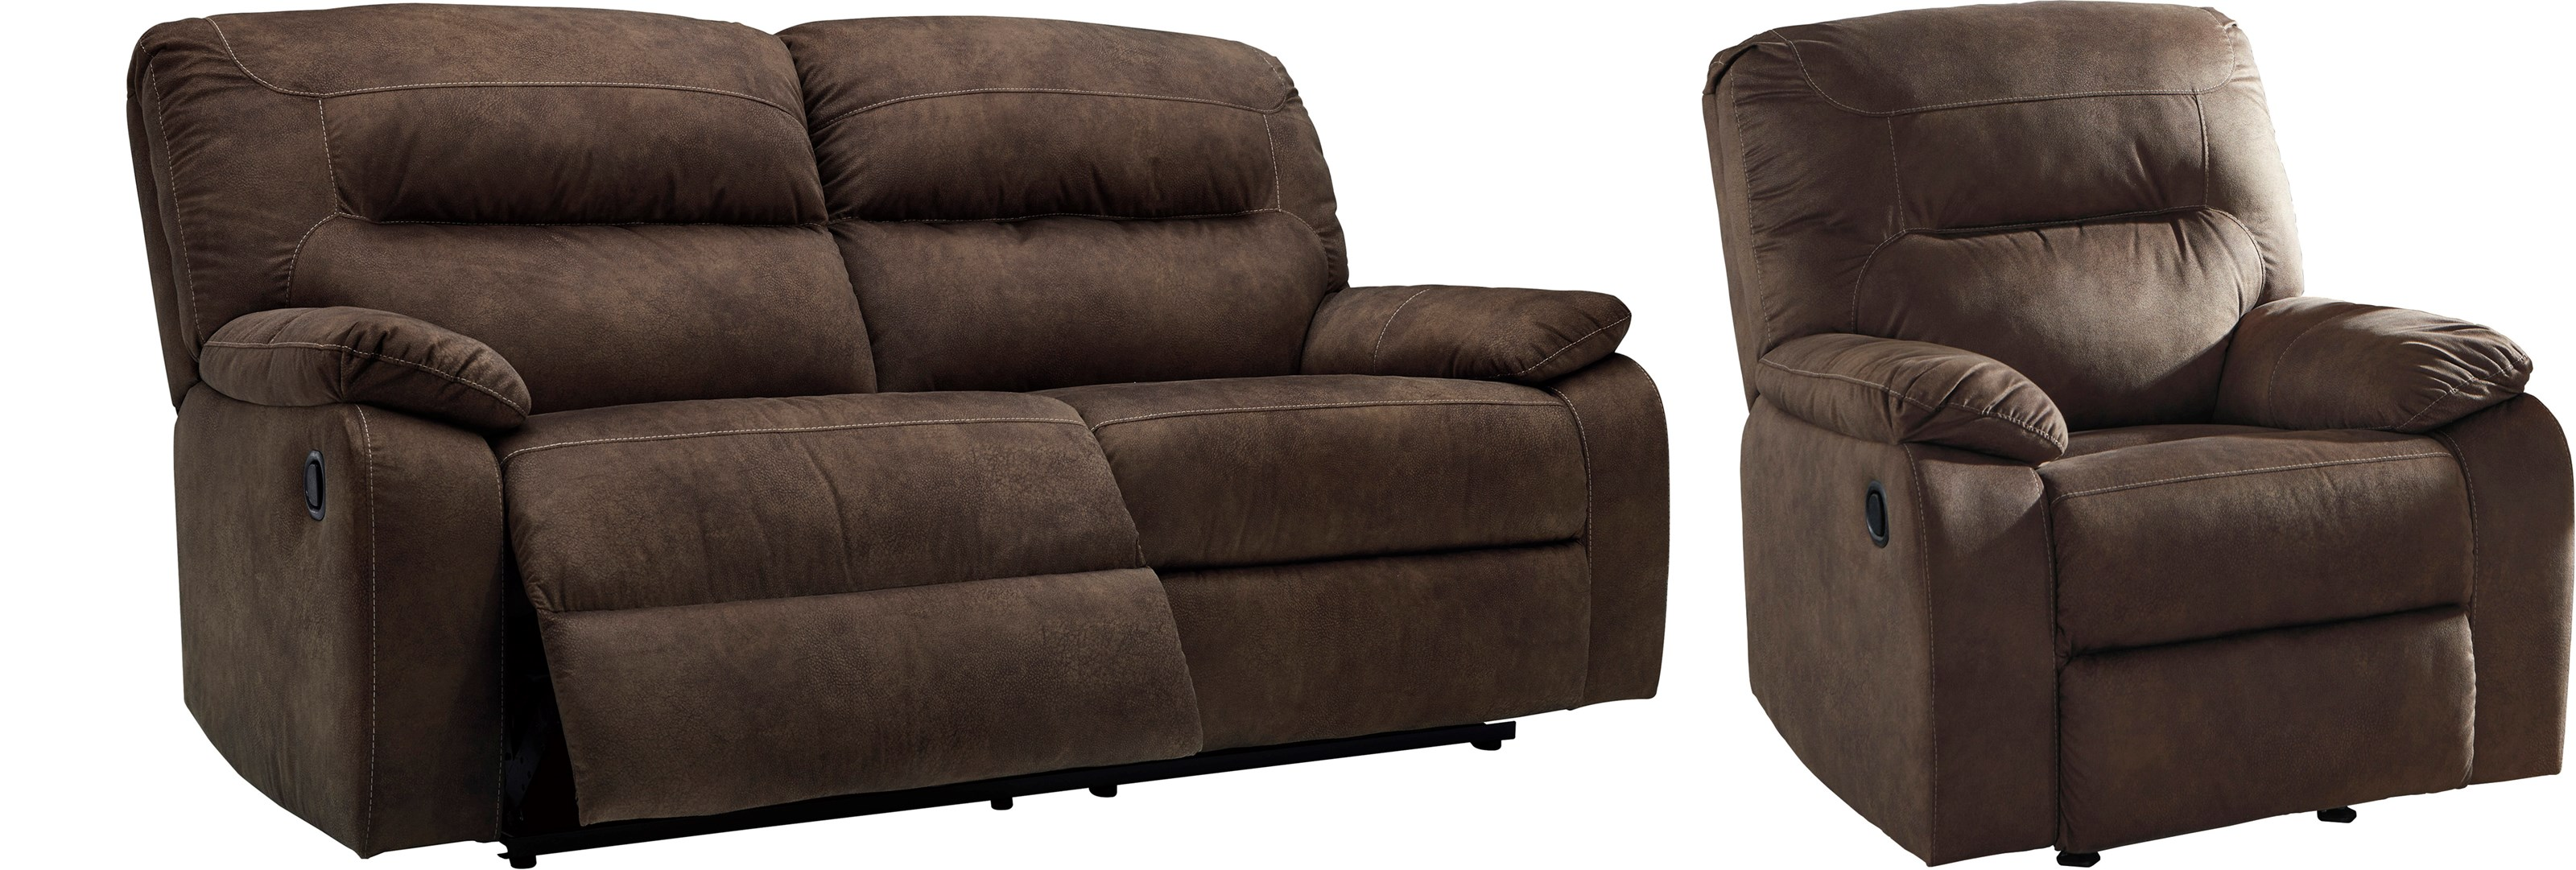 Bolzano Reclining Living Room Group by Signature Design by Ashley at Northeast Factory Direct